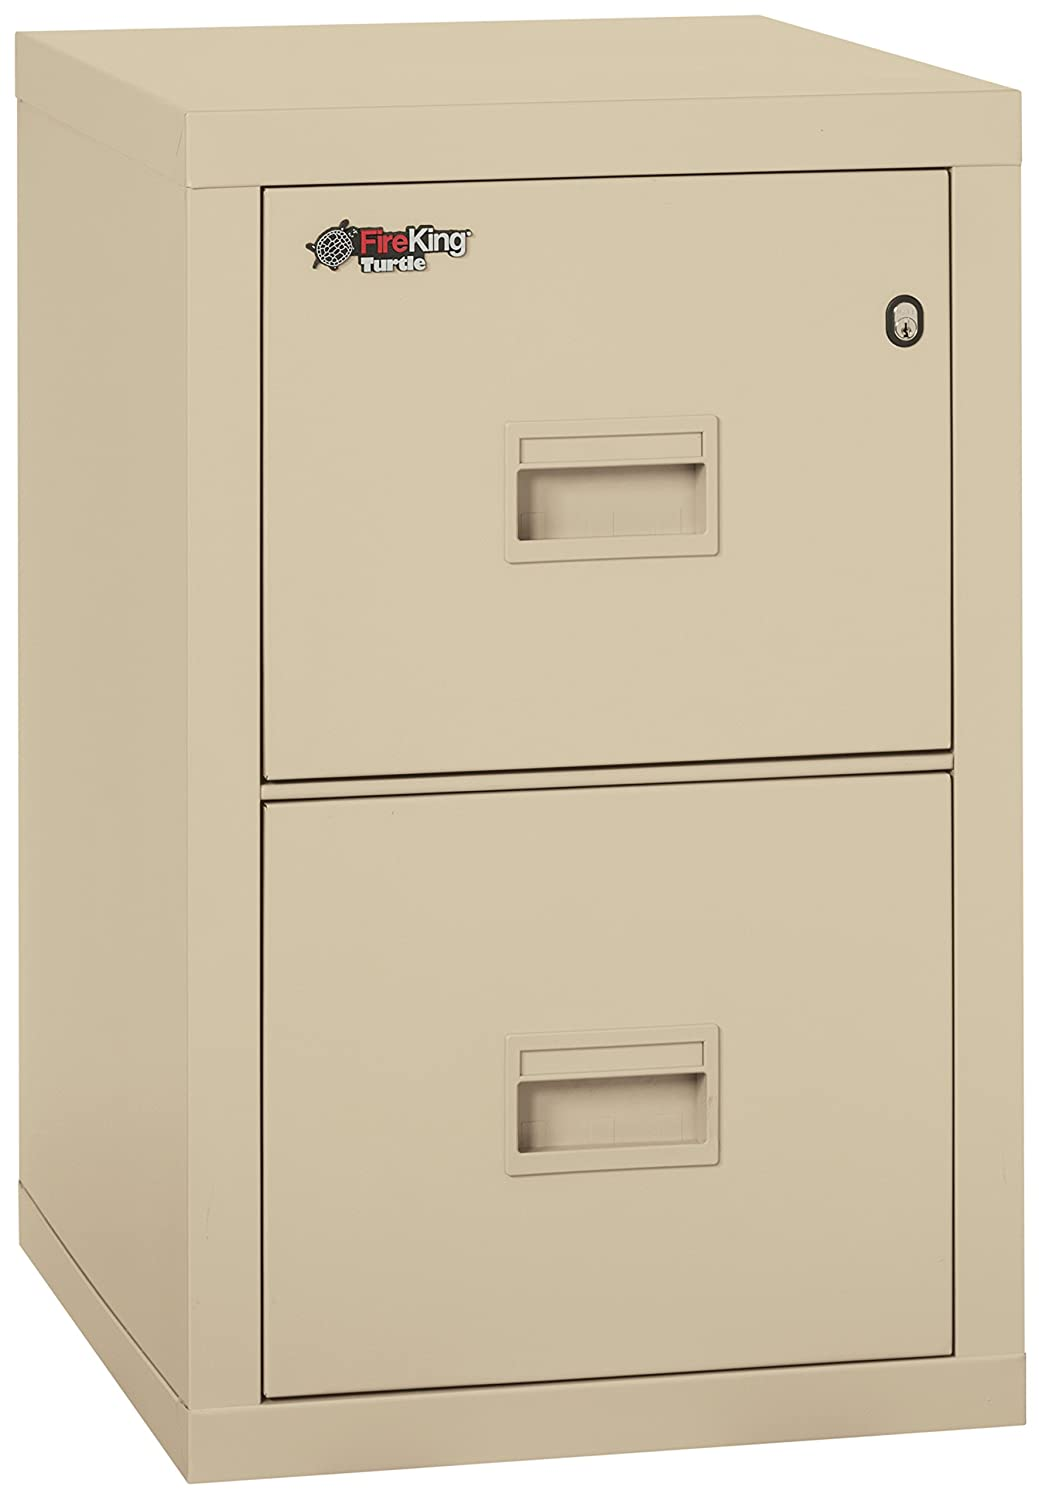 FireKing 4R1822-CPA Turtle Fireproof File Cabinet, 52.75